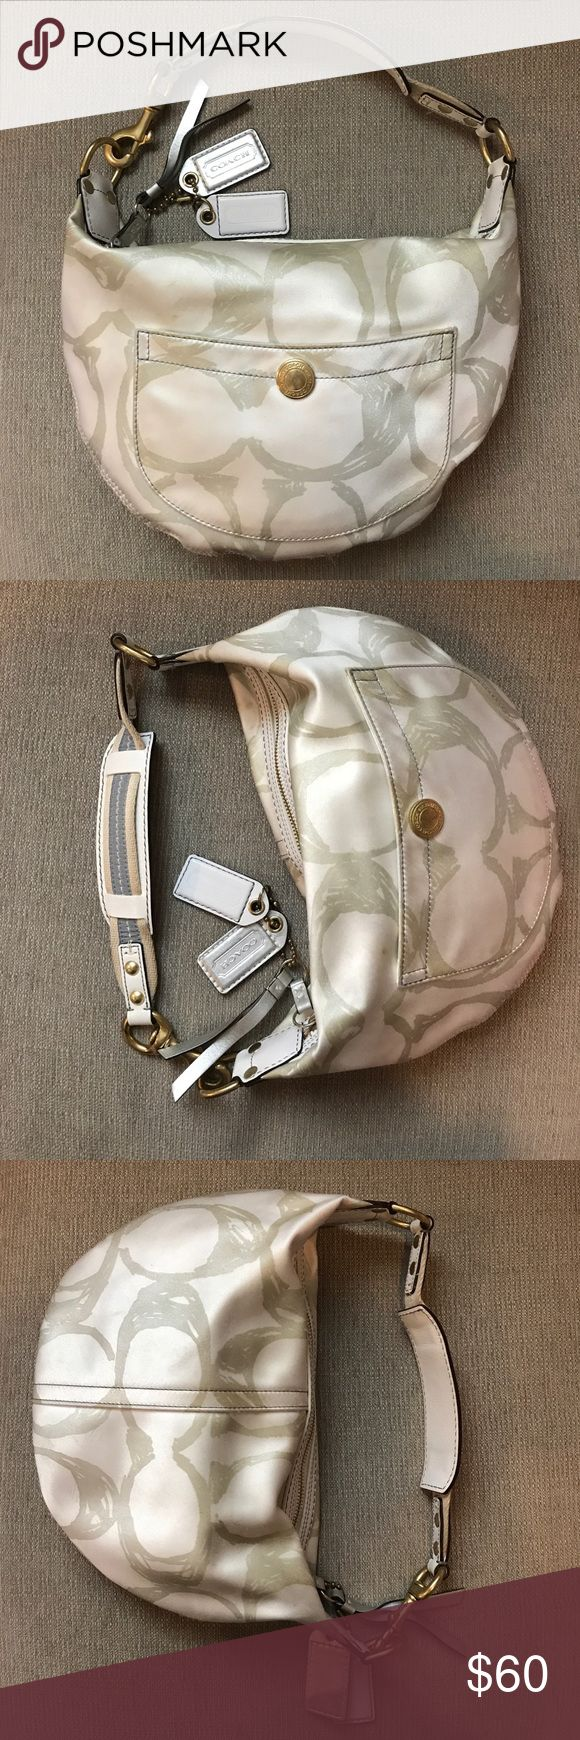 """Coach Hobo Bag (Silver and White) This vintage bag is fresh for spring. White with metallic C print and gold hardware. Very gently used (slight dirt mark on front as shown in pictures and a little wear on the gold hardware). Inside is pristine. 12""""x8.5""""x2"""" Coach Bags Hobos"""